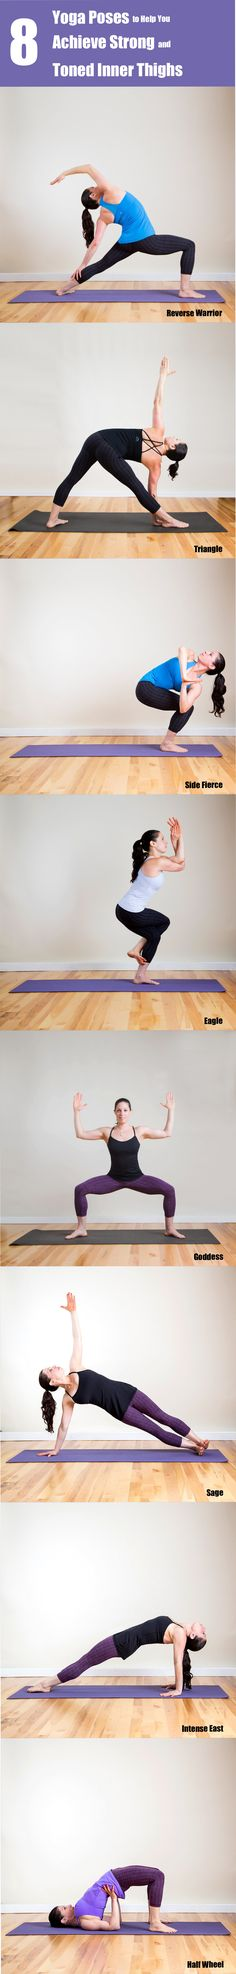 8 Yoga Poses to Help You Achieve Strong and Toned Inner Thighs